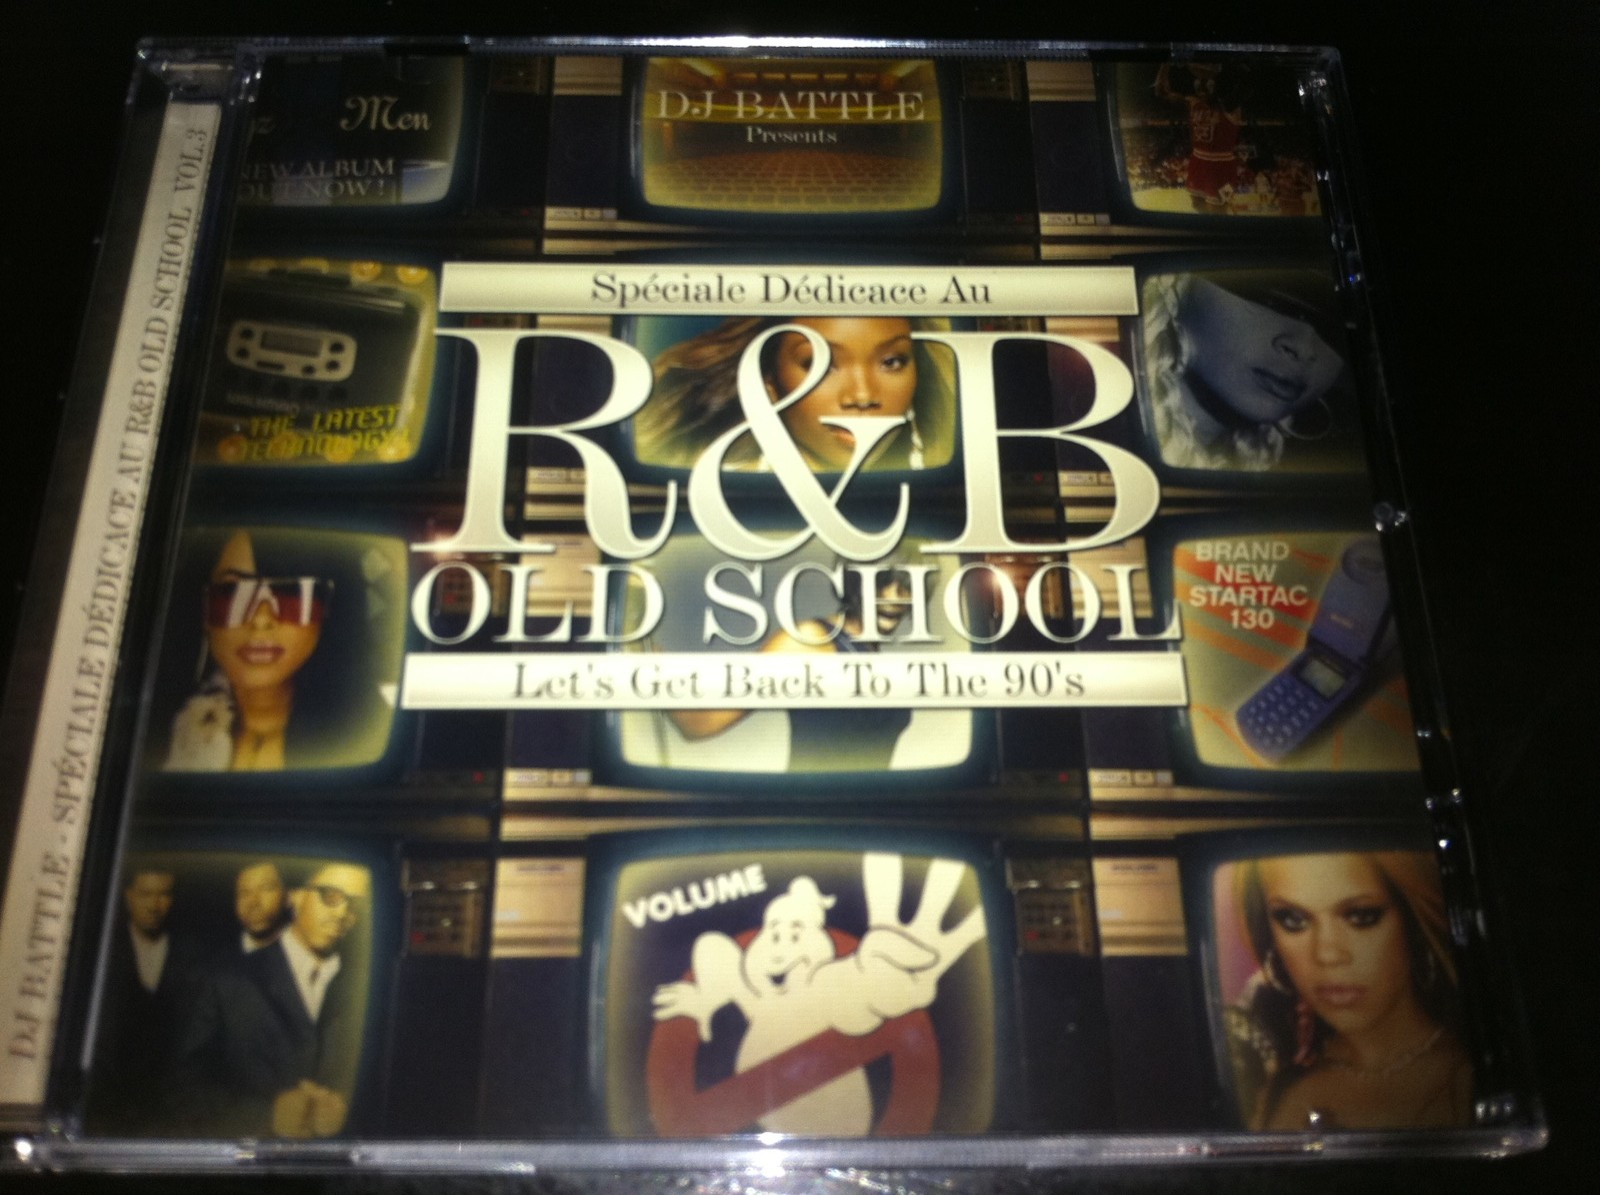 Spciale Ddicace Au RNB Old School Volume 3 (Mixed By DJ Battle)